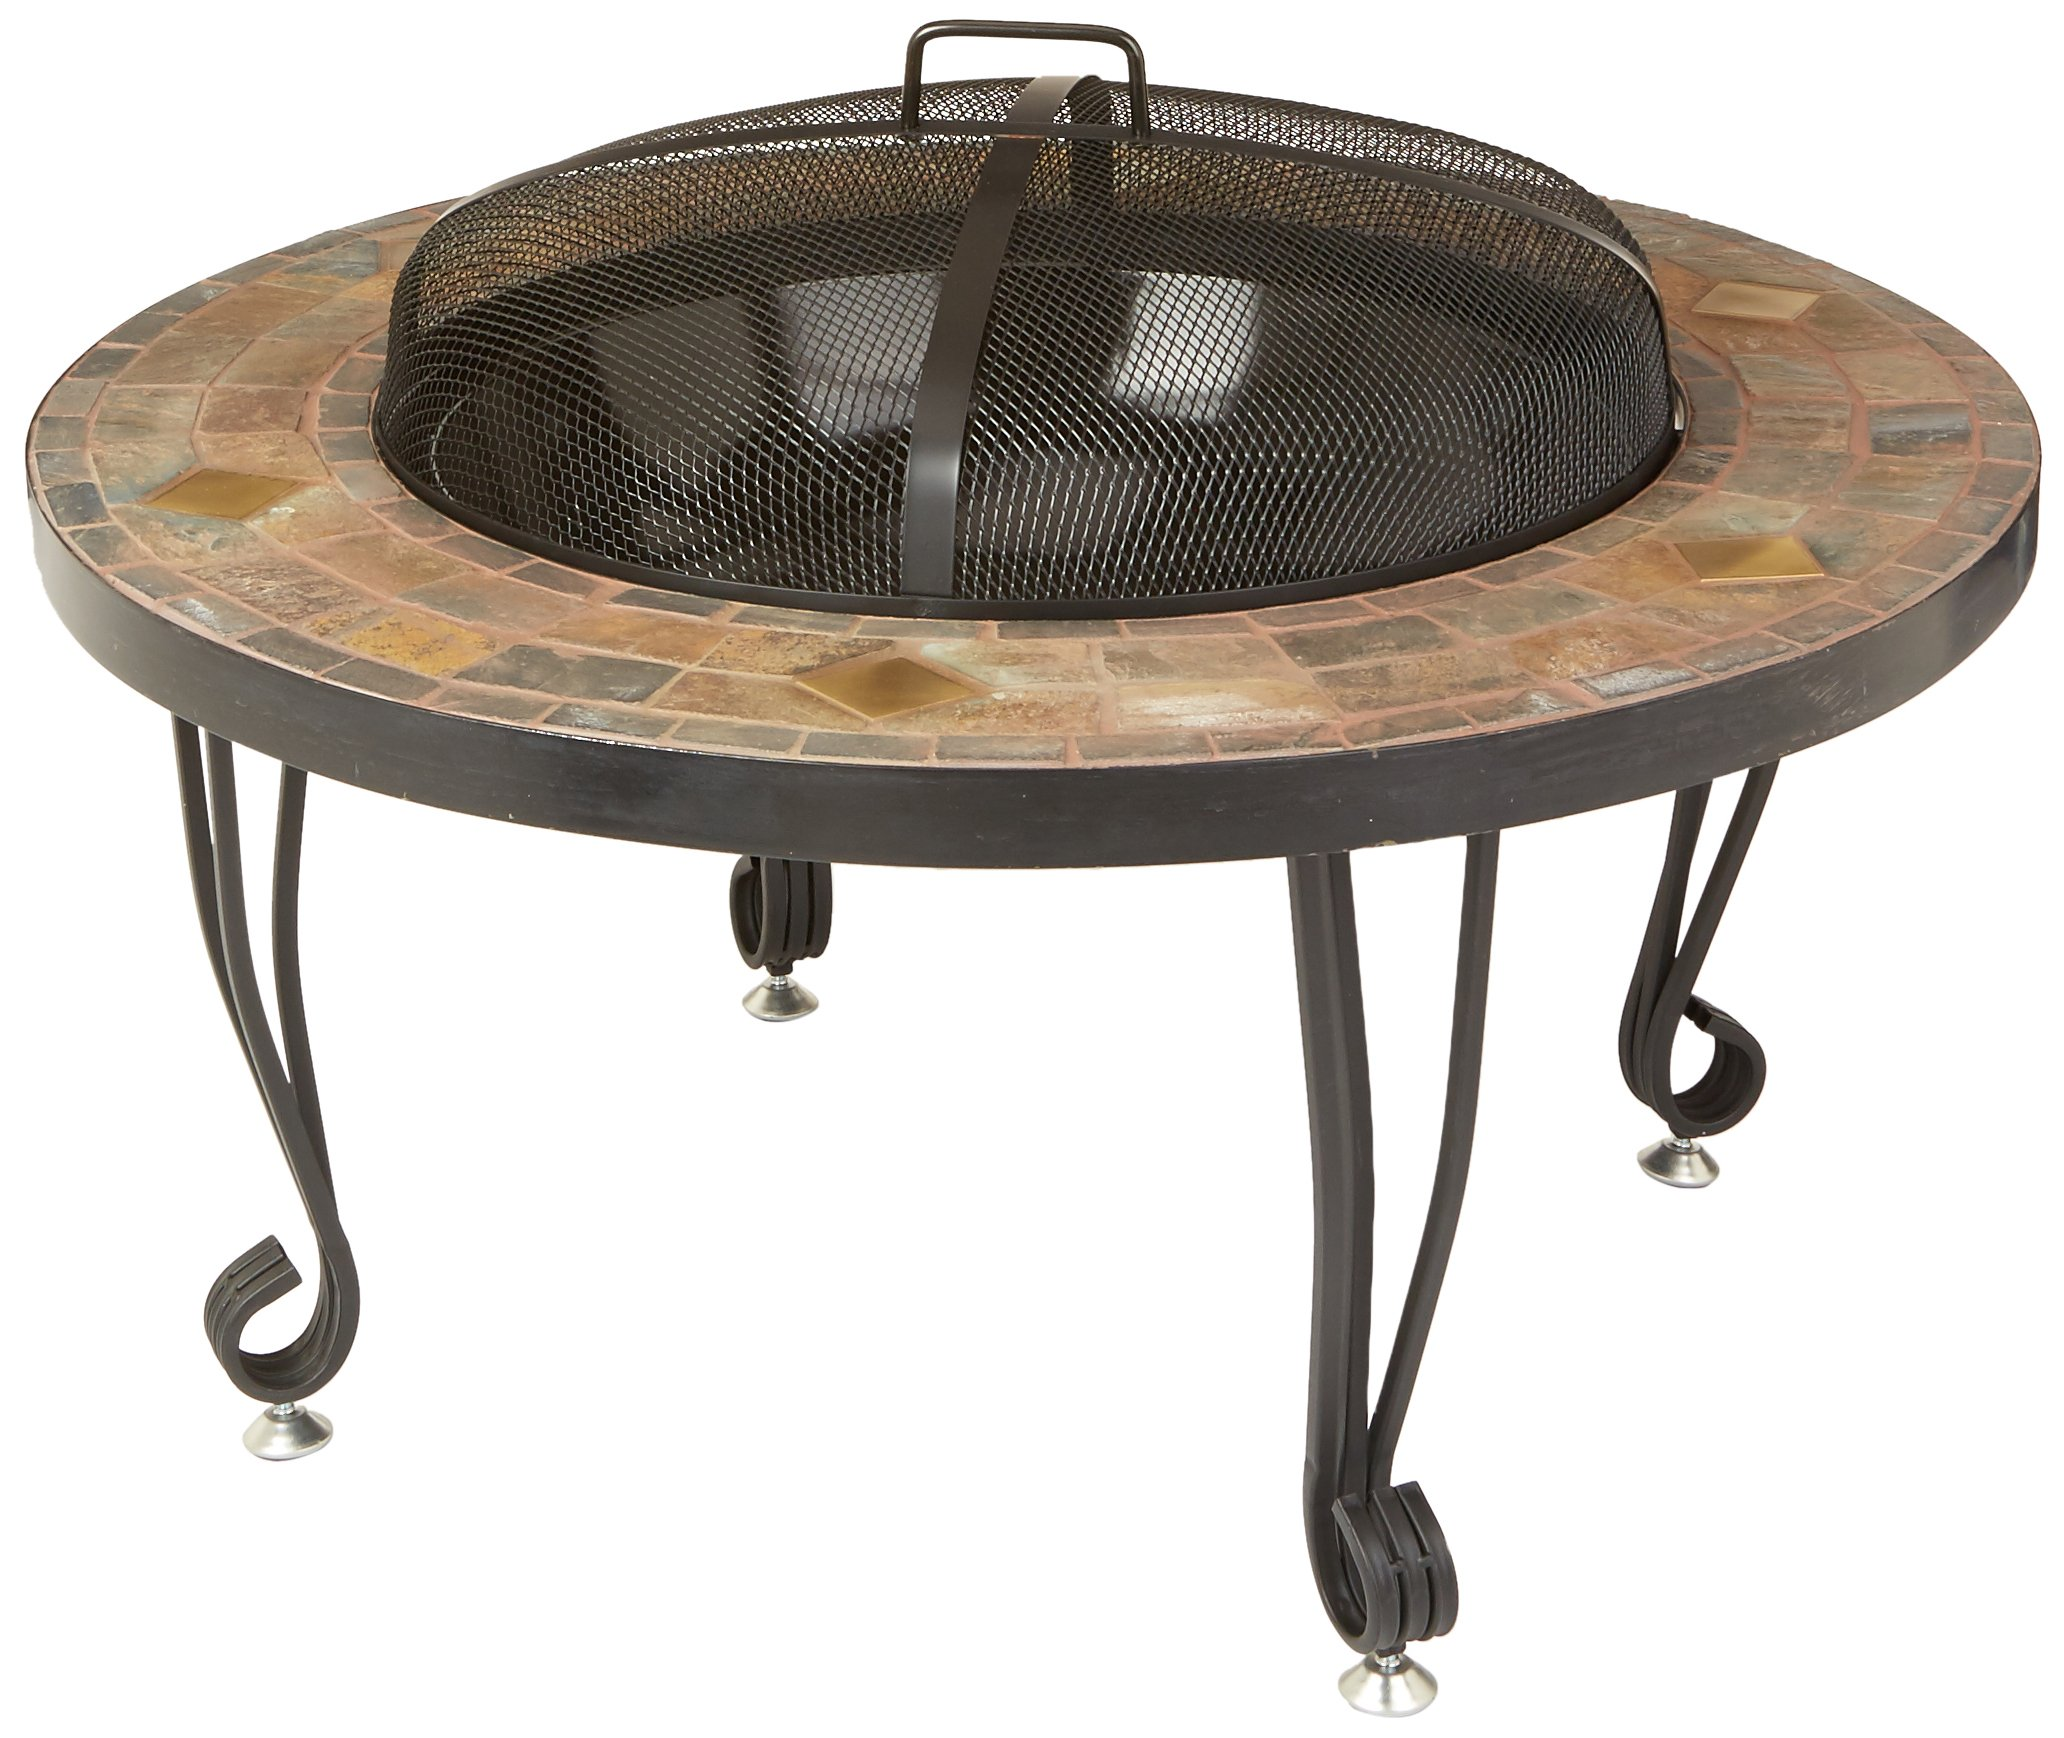 AmazonBasics 34-Inch Natural Stone Fire Pit with Copper Accents by AmazonBasics